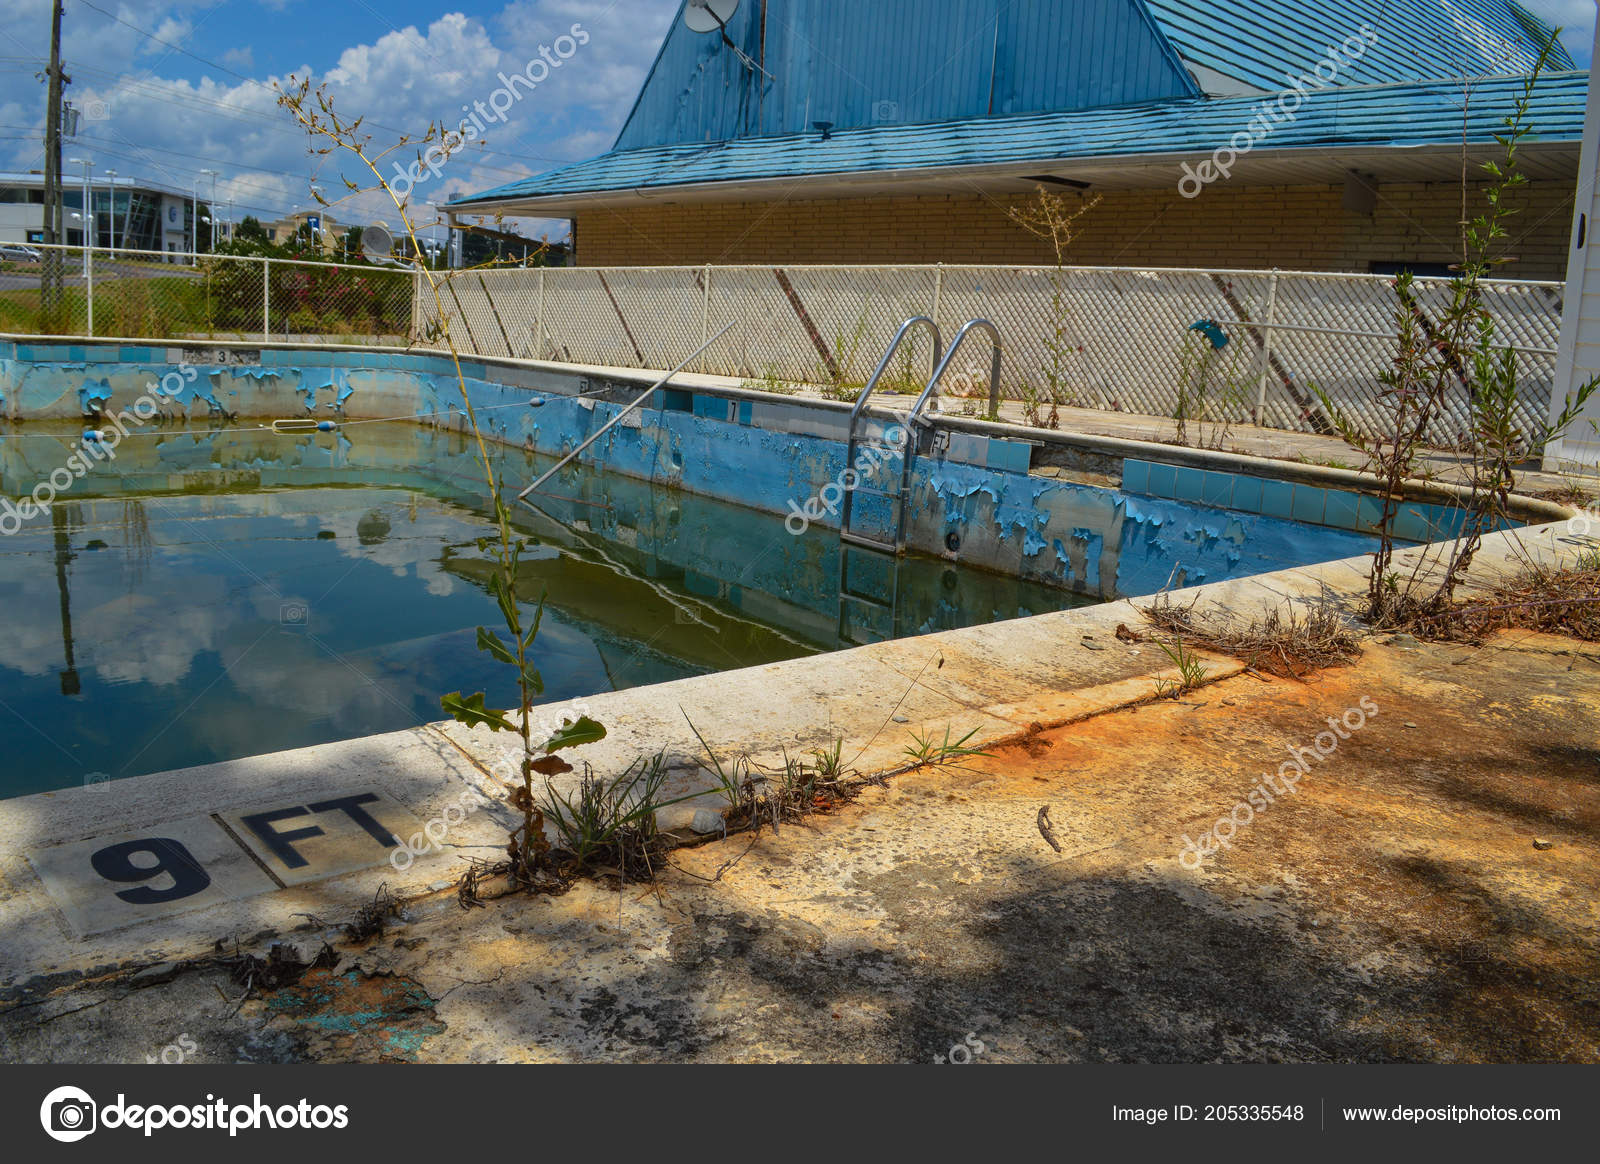 Old Dirty Pool Abandoned Deteriorating Motel Stock Photo C Urbanex 205335548